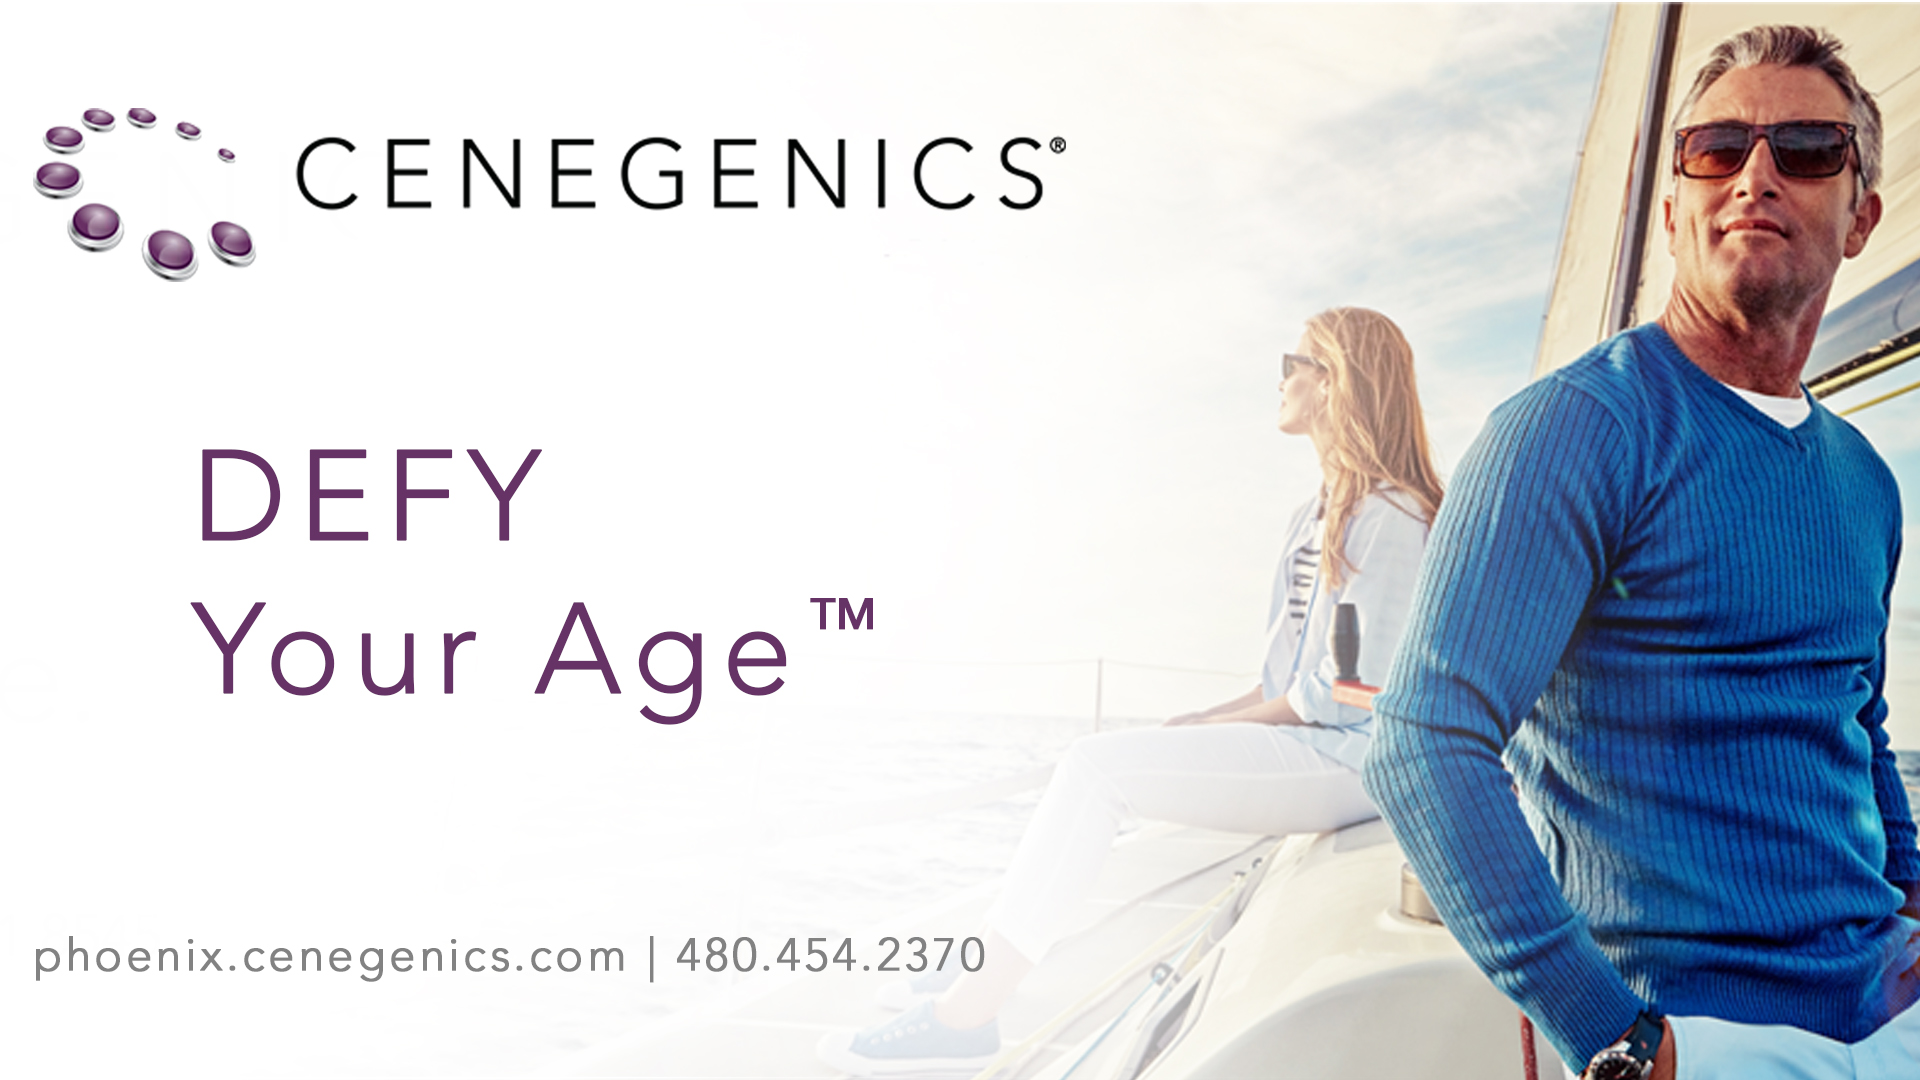 Cenegenics Phoenix reviews | Medical Centers at 9060 E. Via Linda Boulevard - Scottsdale AZ